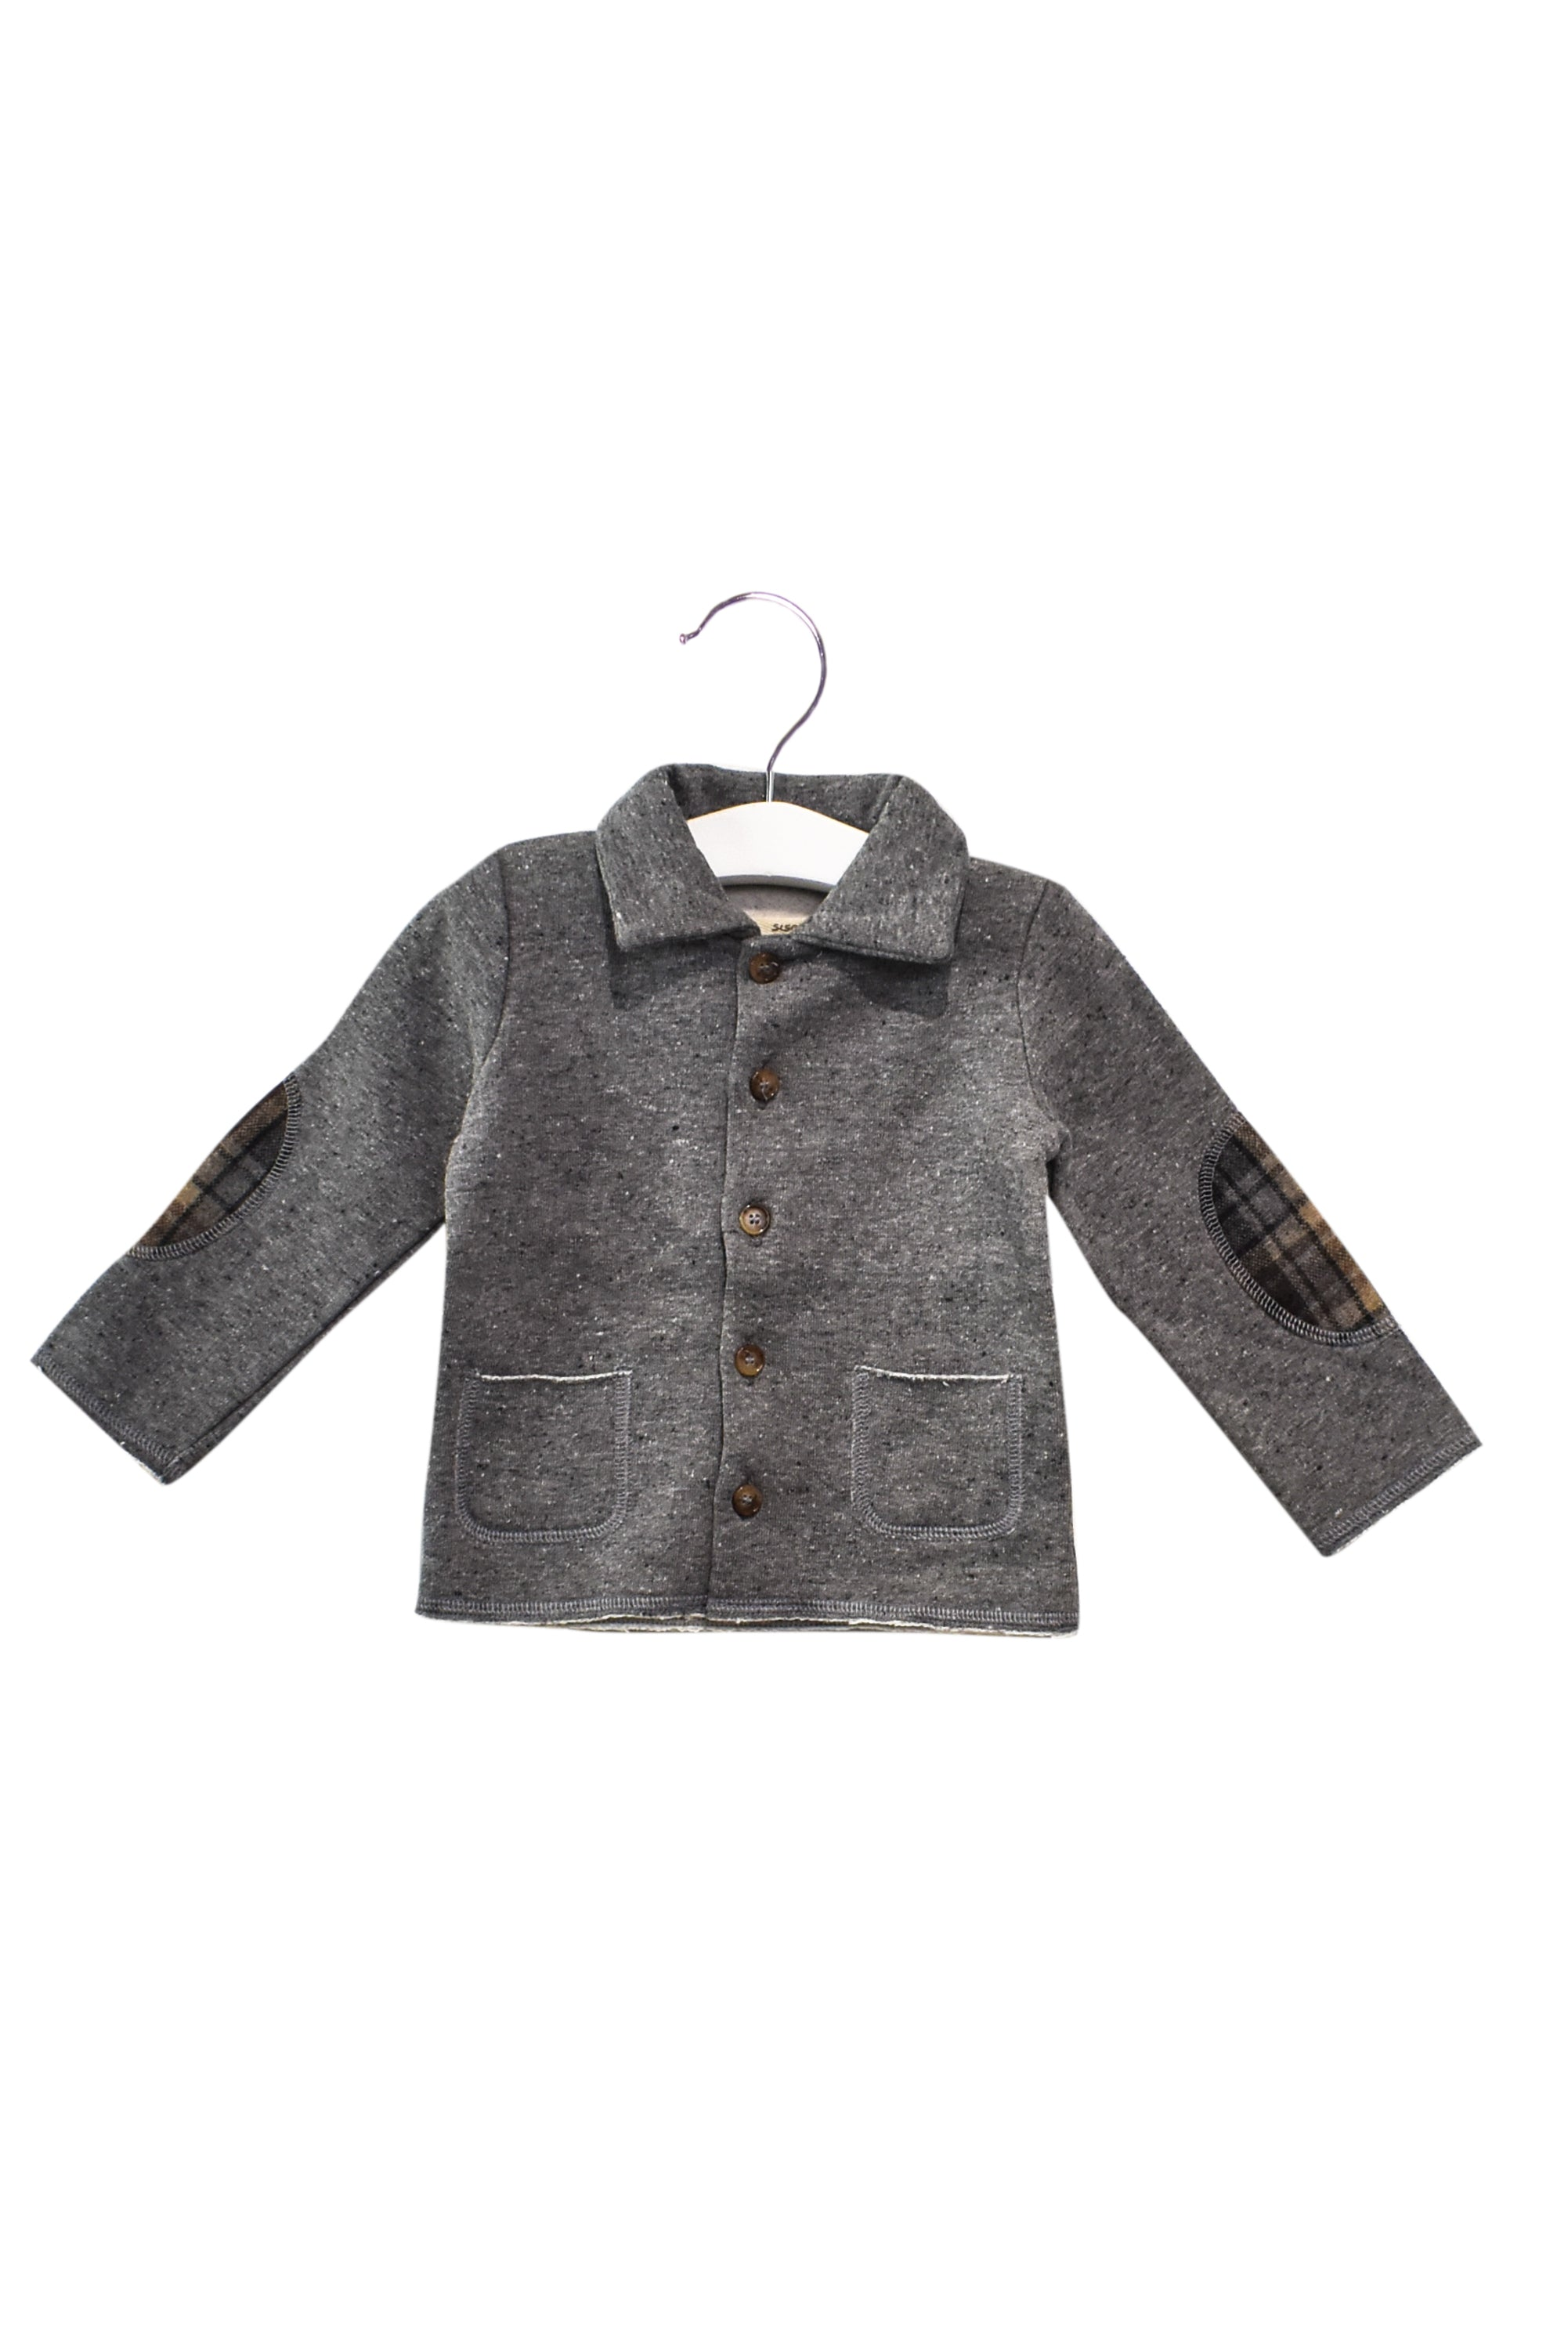 10028343 Siseo Olive Baby~Cardigan 18M at Retykle